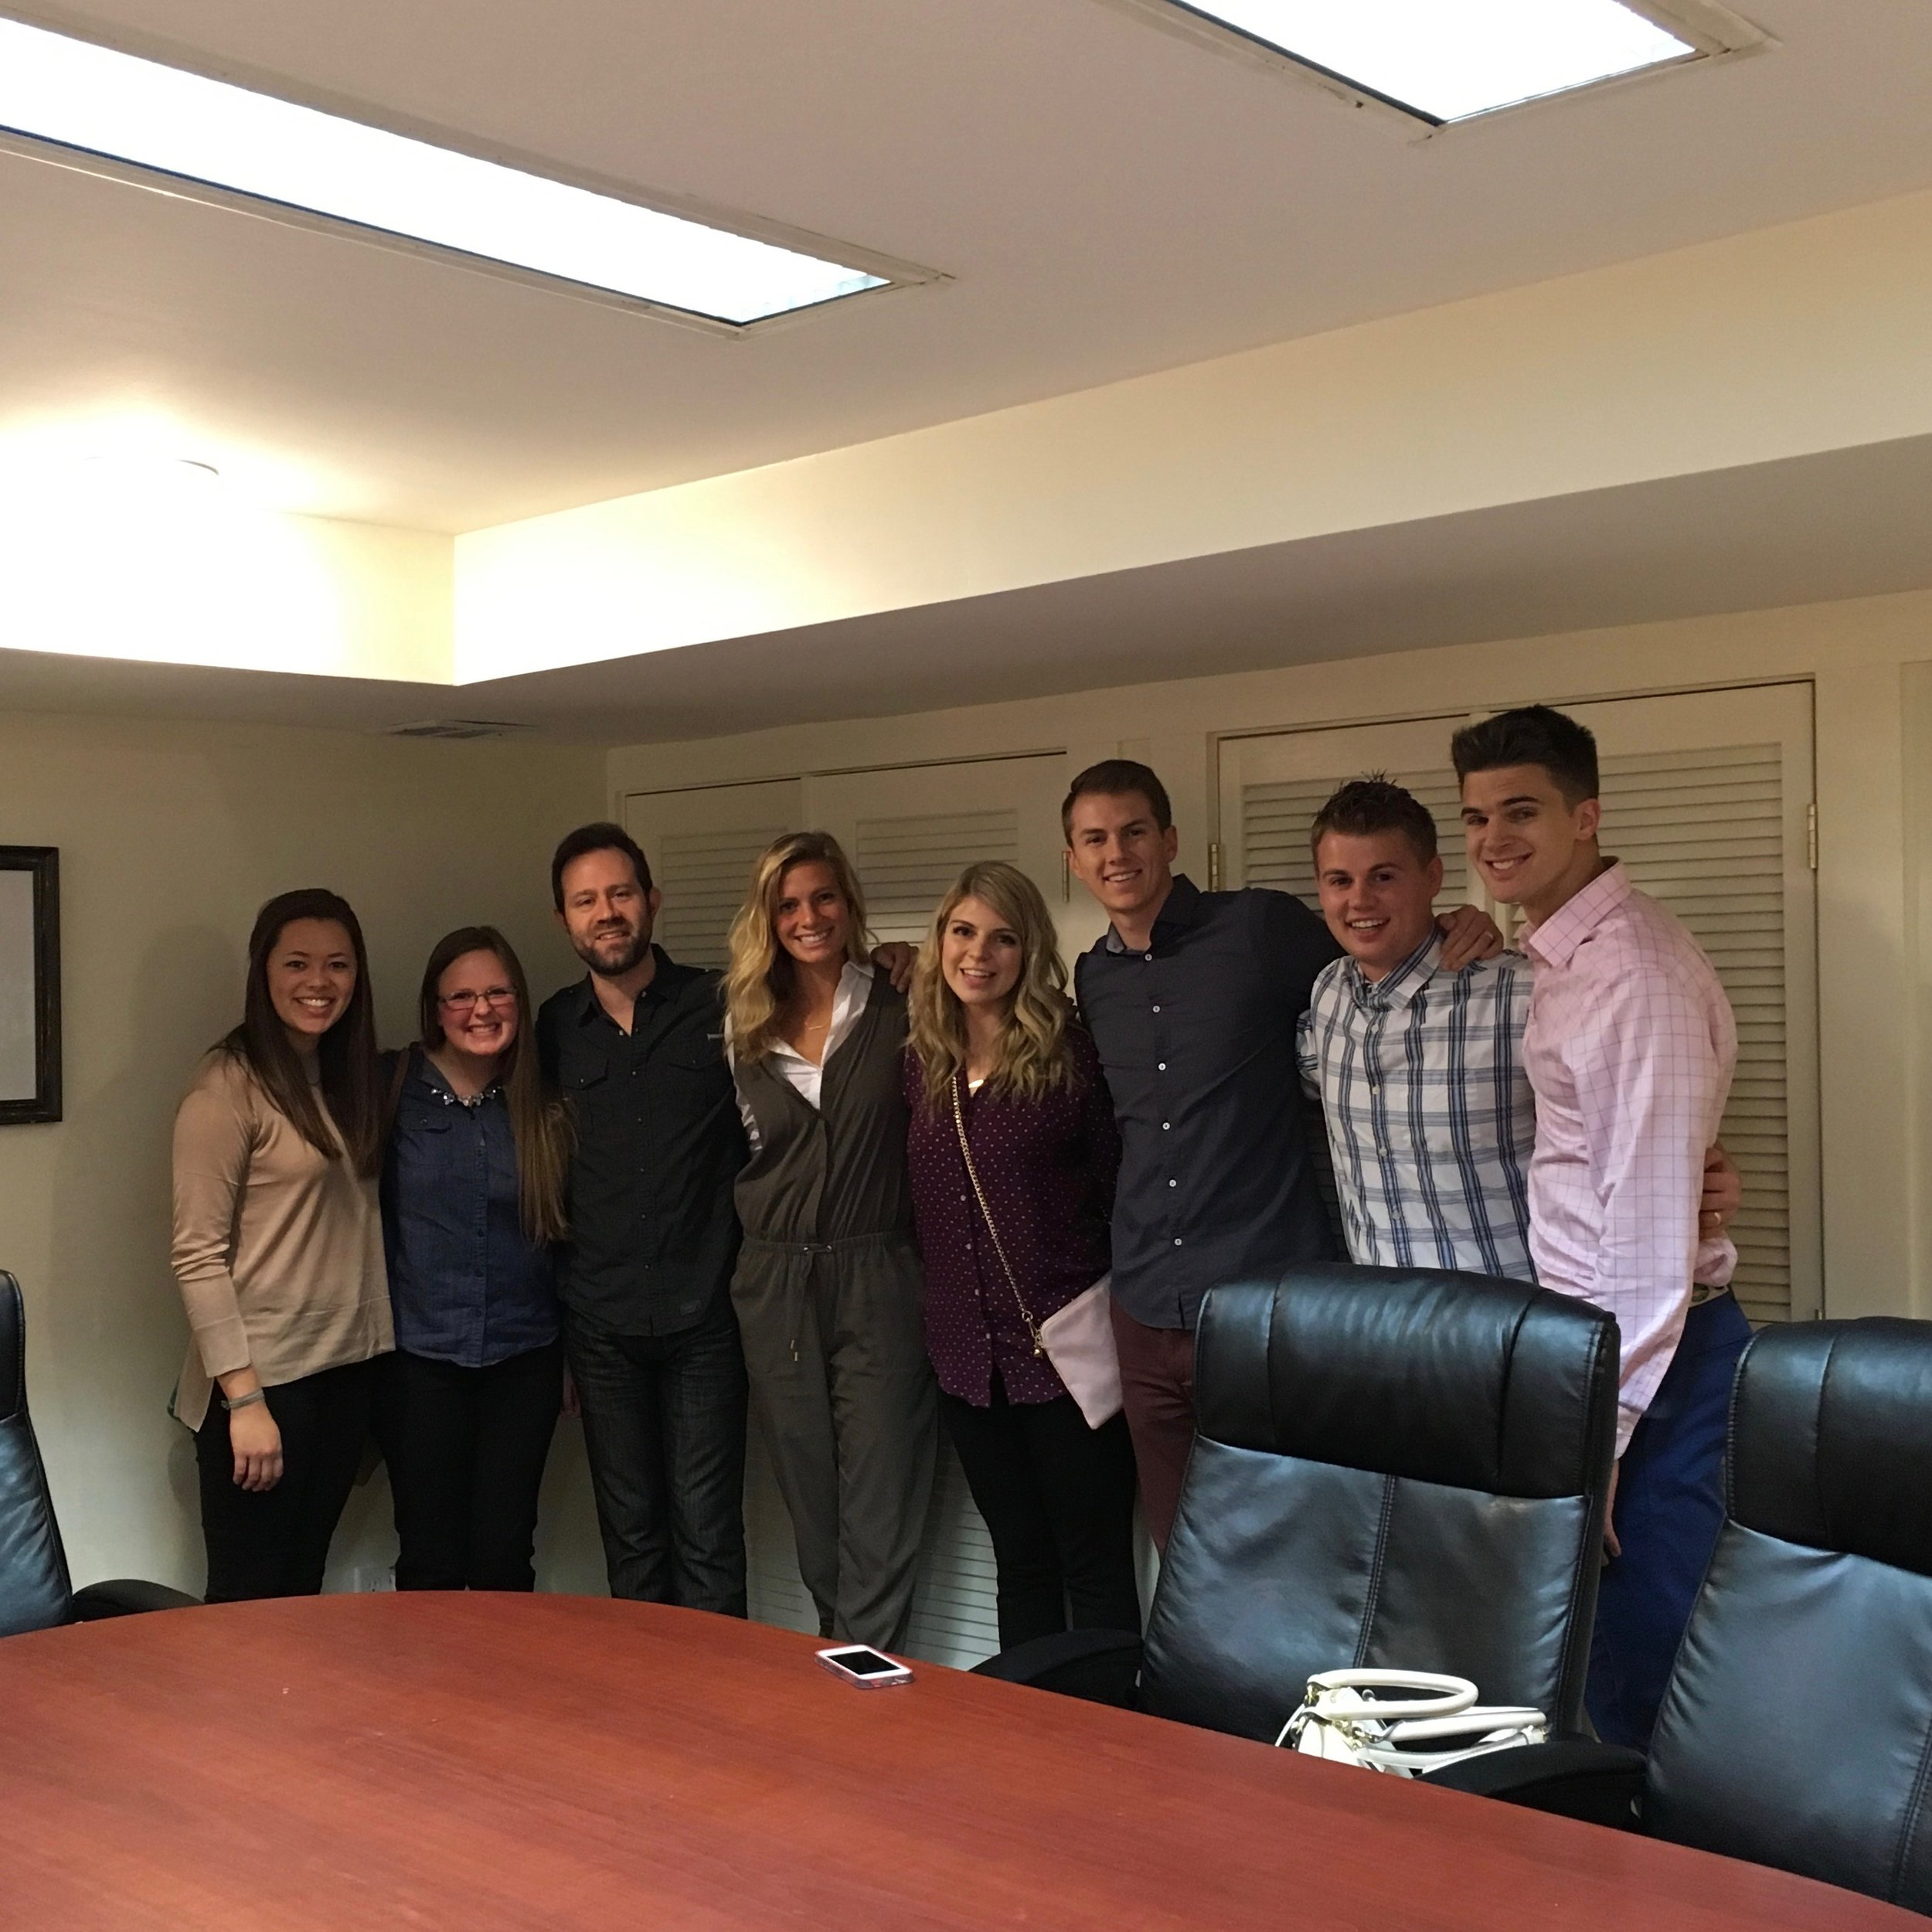 Giving an agency tour with Brigham Young University PRSSA students